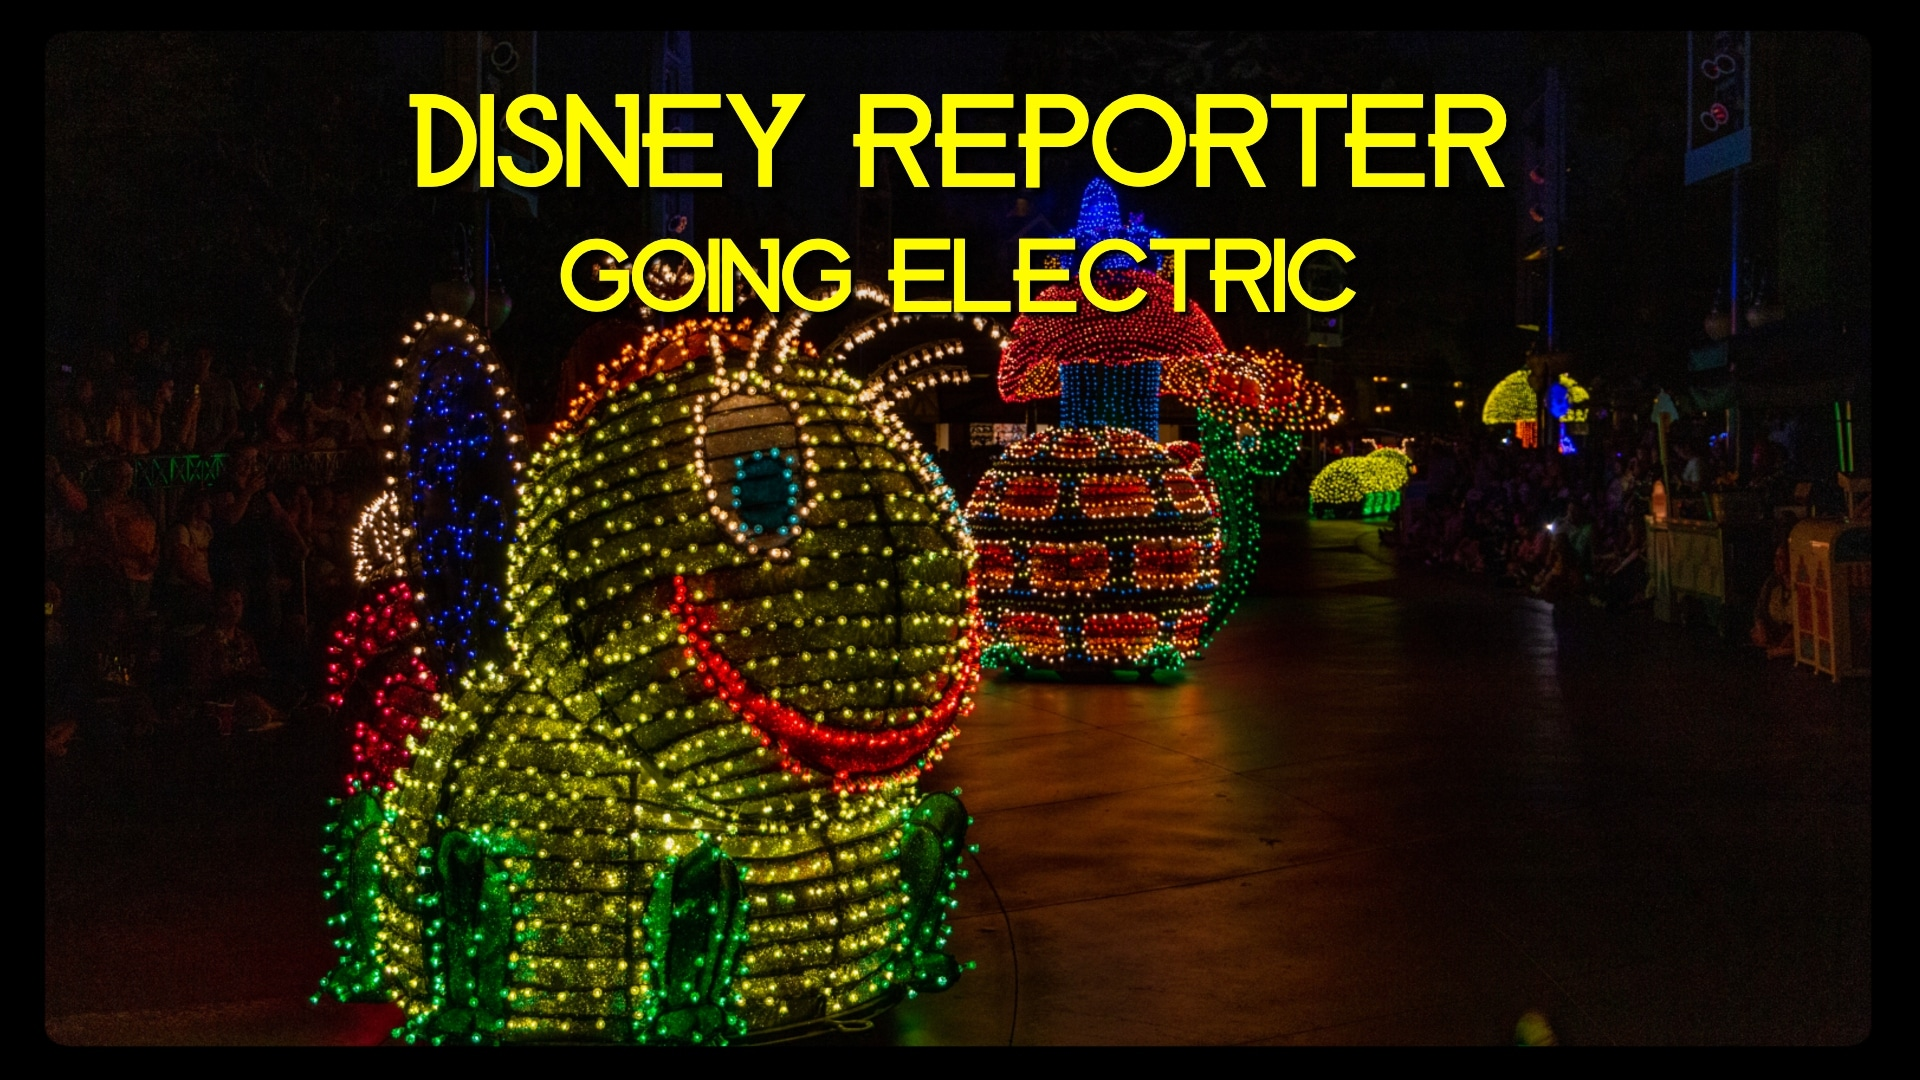 Going Electric - DISNEY Reporter